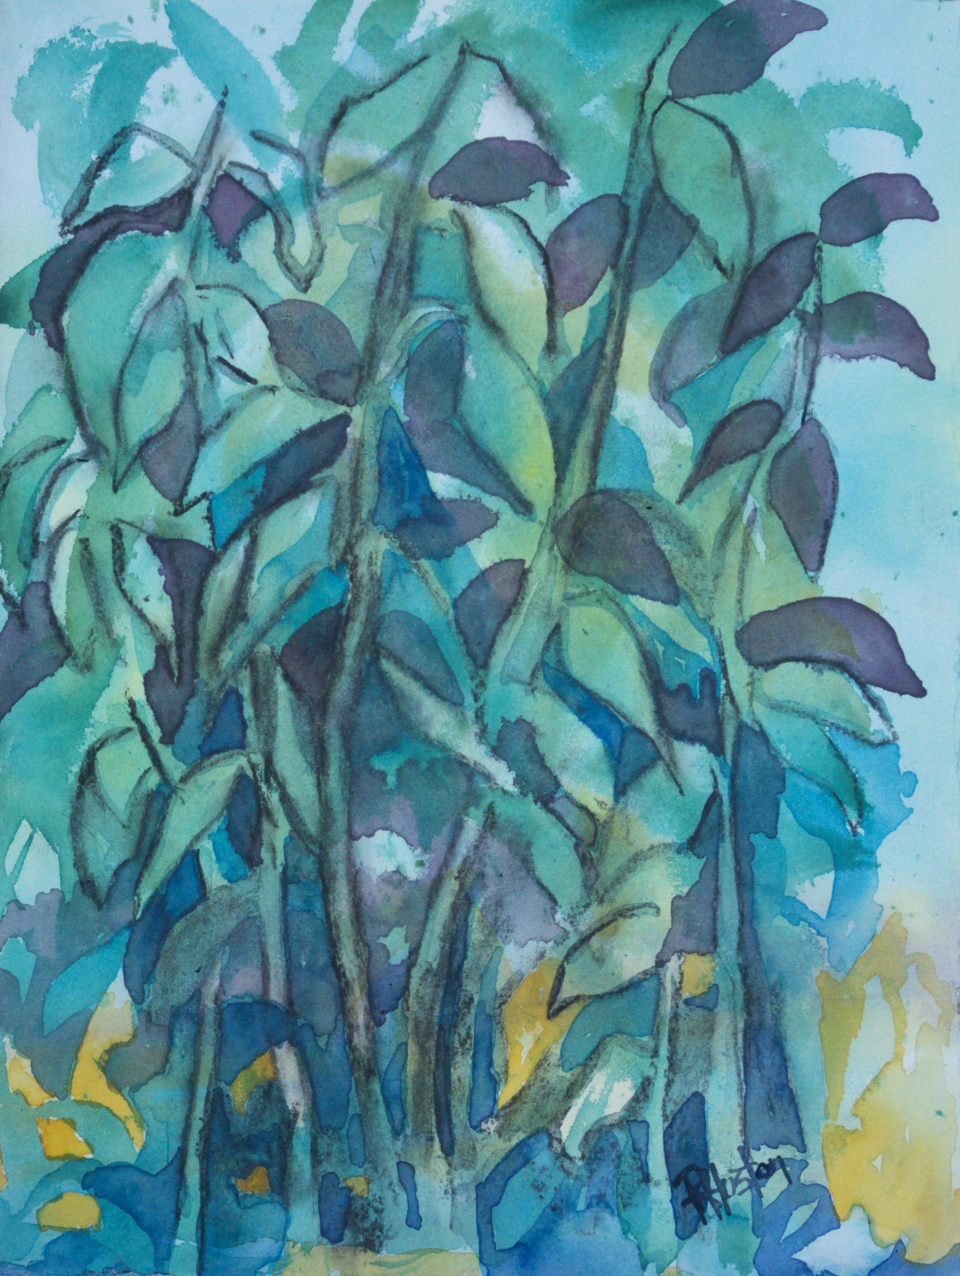 River Cane... Arundinaria 11x15, mixed media (watercolor and charcoal)